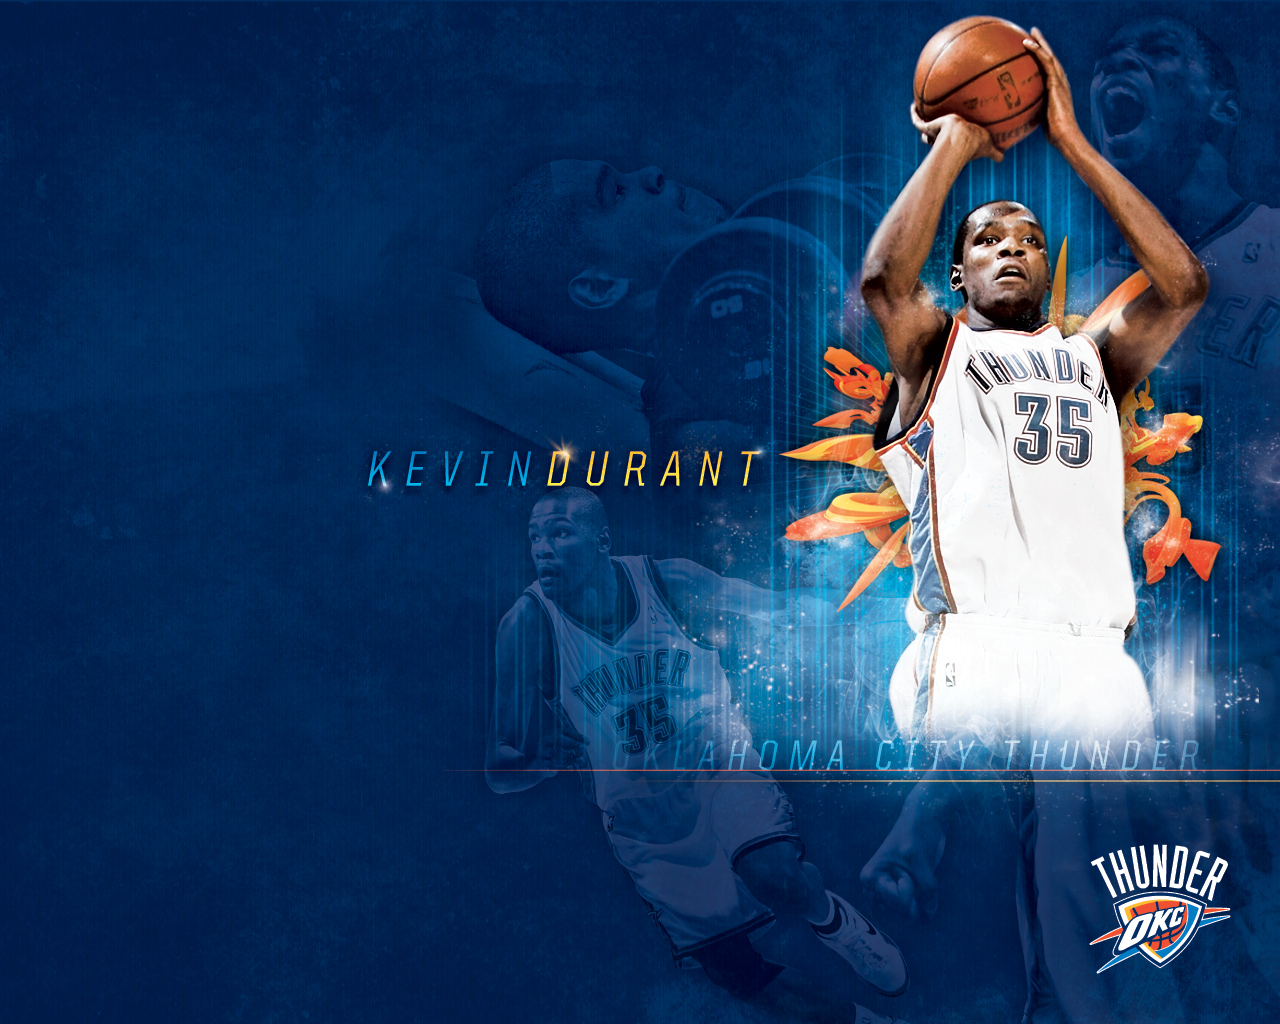 Pics Photos   Kevin Durant Wallpaper Hd For Desktop 1280x1024